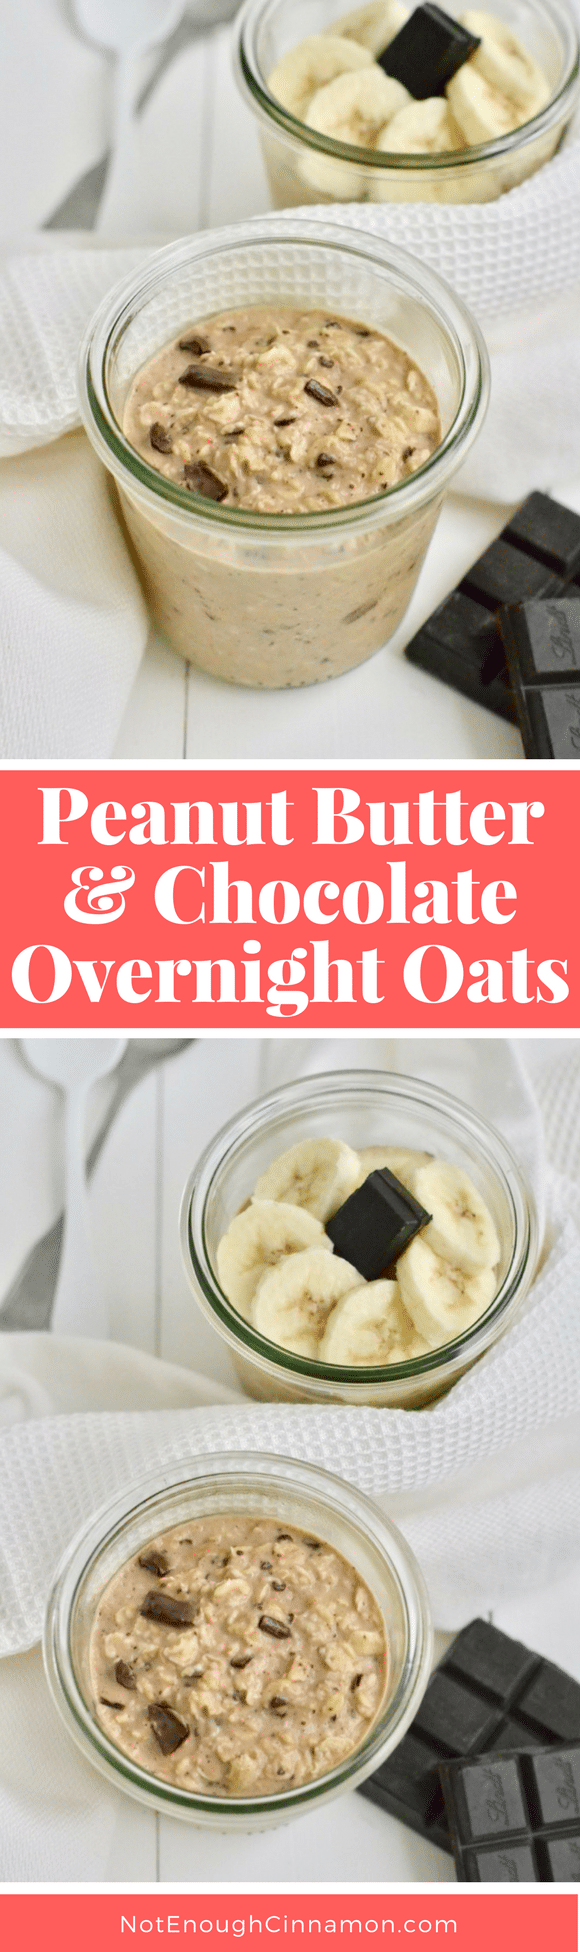 Peanut Butter & Chocolate Overnight Oats! The two greatest breakfast flavors ever combine to form the ultimate combo for these creamy clean eating peanut butter and chocolate overnight oats. Have them for breakfast, or a healthy afternoon or pre-workout snack! #overnightoats, #cleaneatingrecipes, #realfood, #peanutbutter, #oatmeal, #preworkout, #healthydesserts